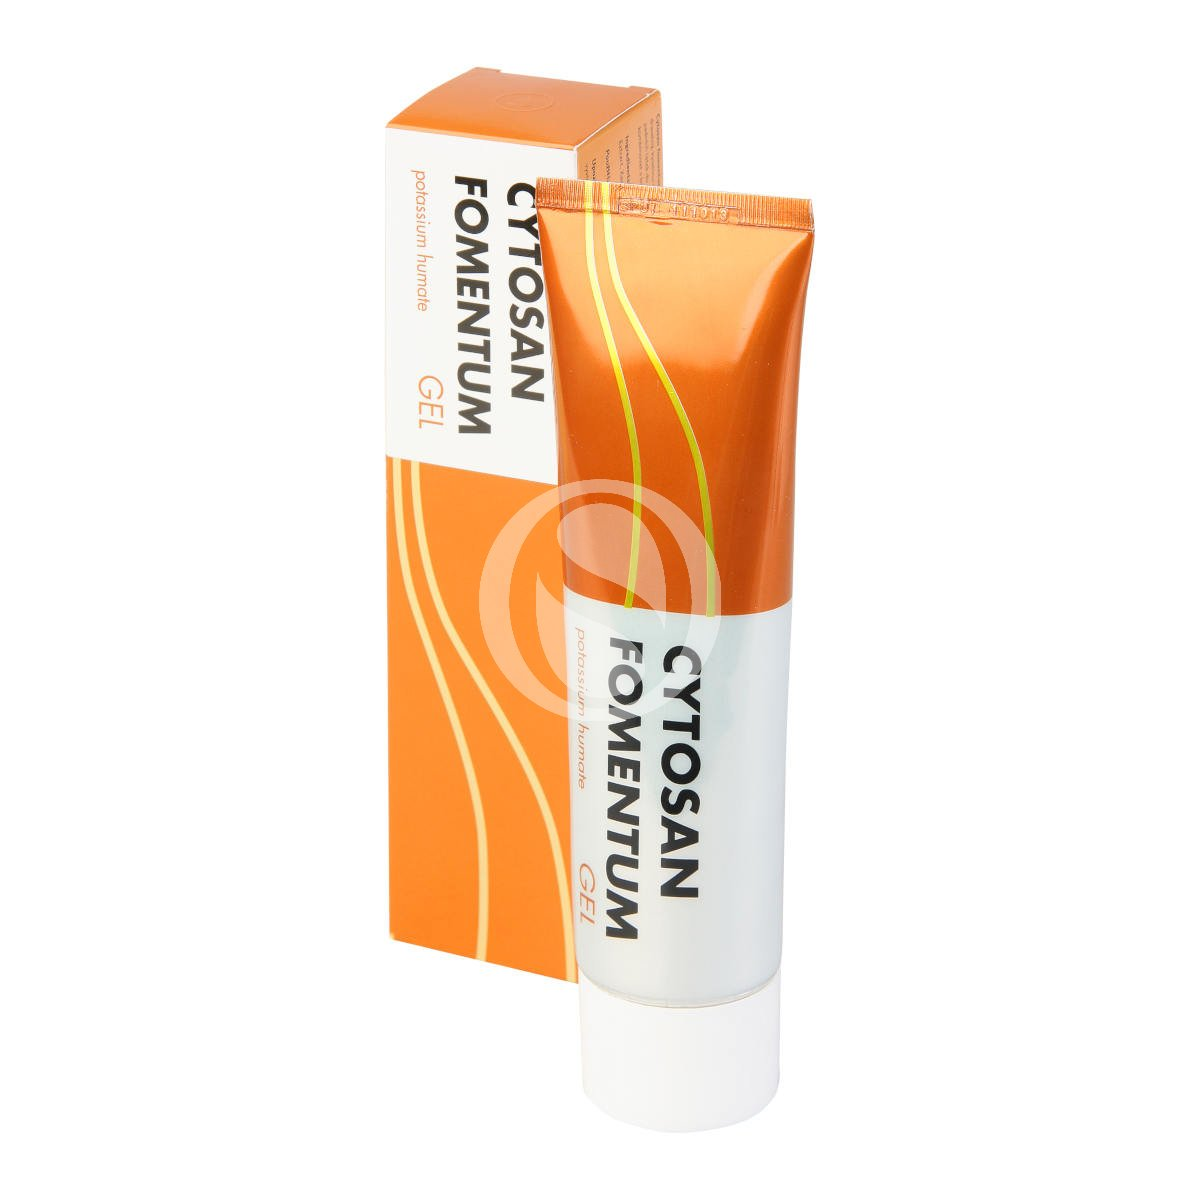 Produktbild Energy Group CYTOSAN FOMENTUM GEL 100ml